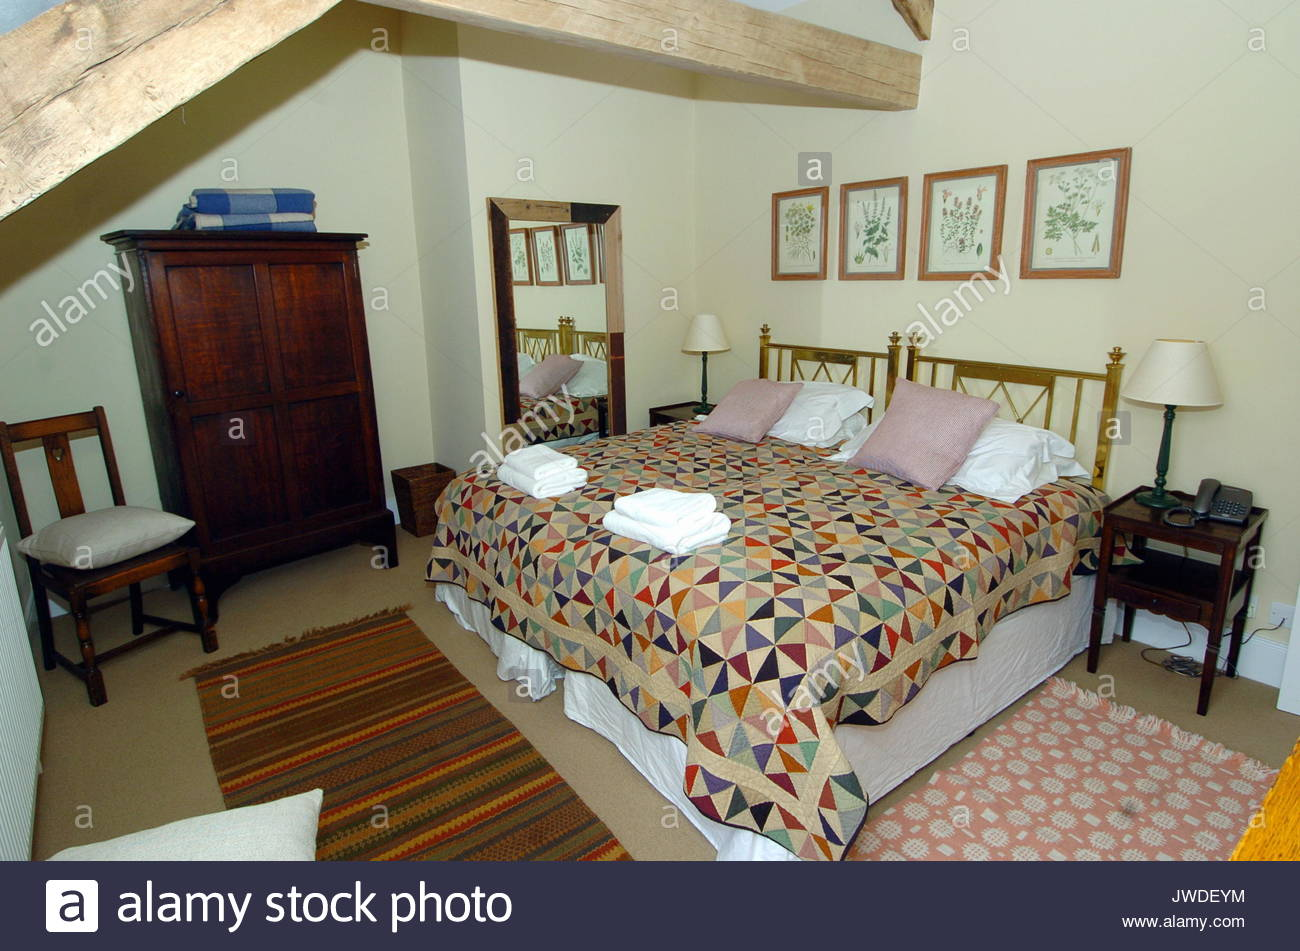 Interior View Of The House Belonging To Prince Charles And Wife Camilla,  The Duchess Of Cornwall. A Converted Old Farm House Was Open For The First  Time To ...